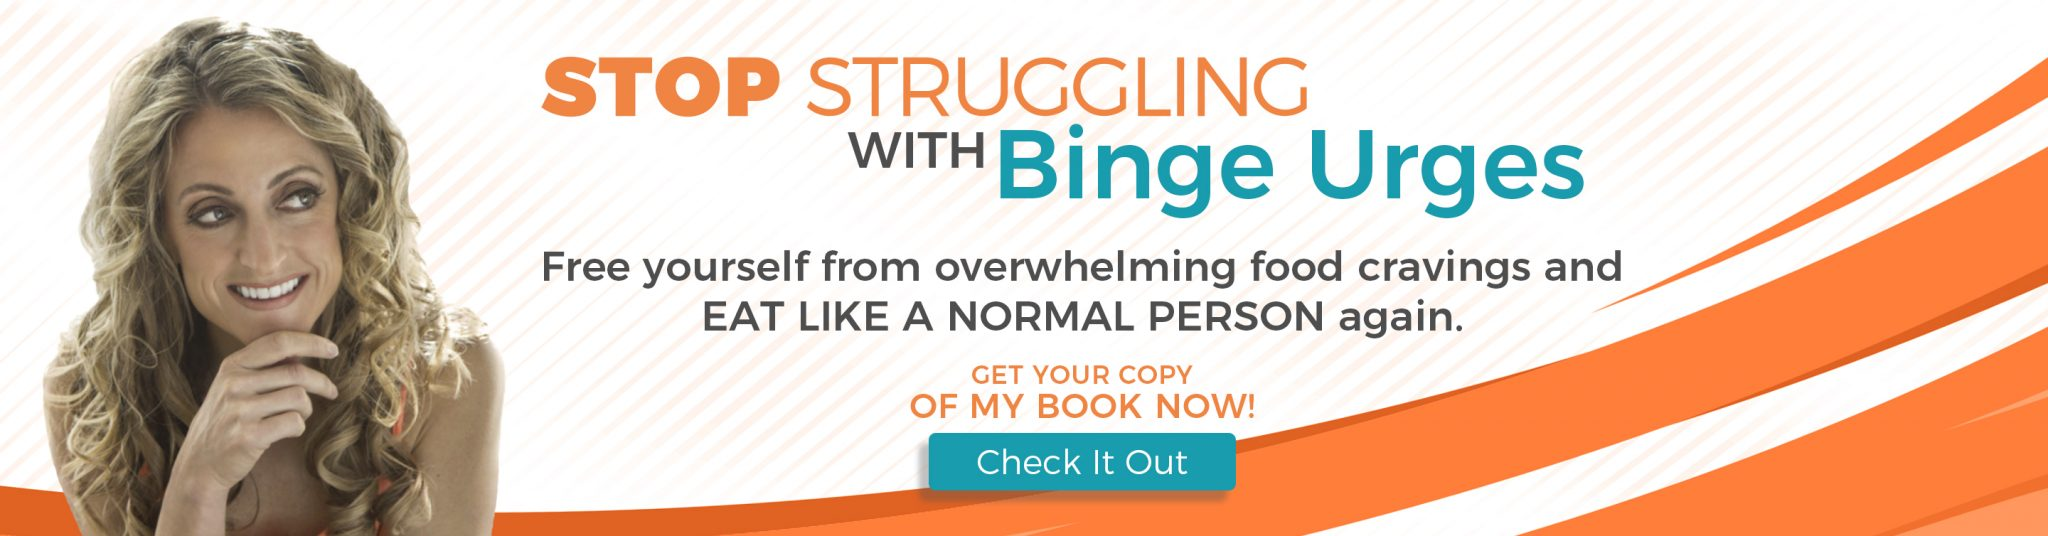 How to Stop a Binge Book